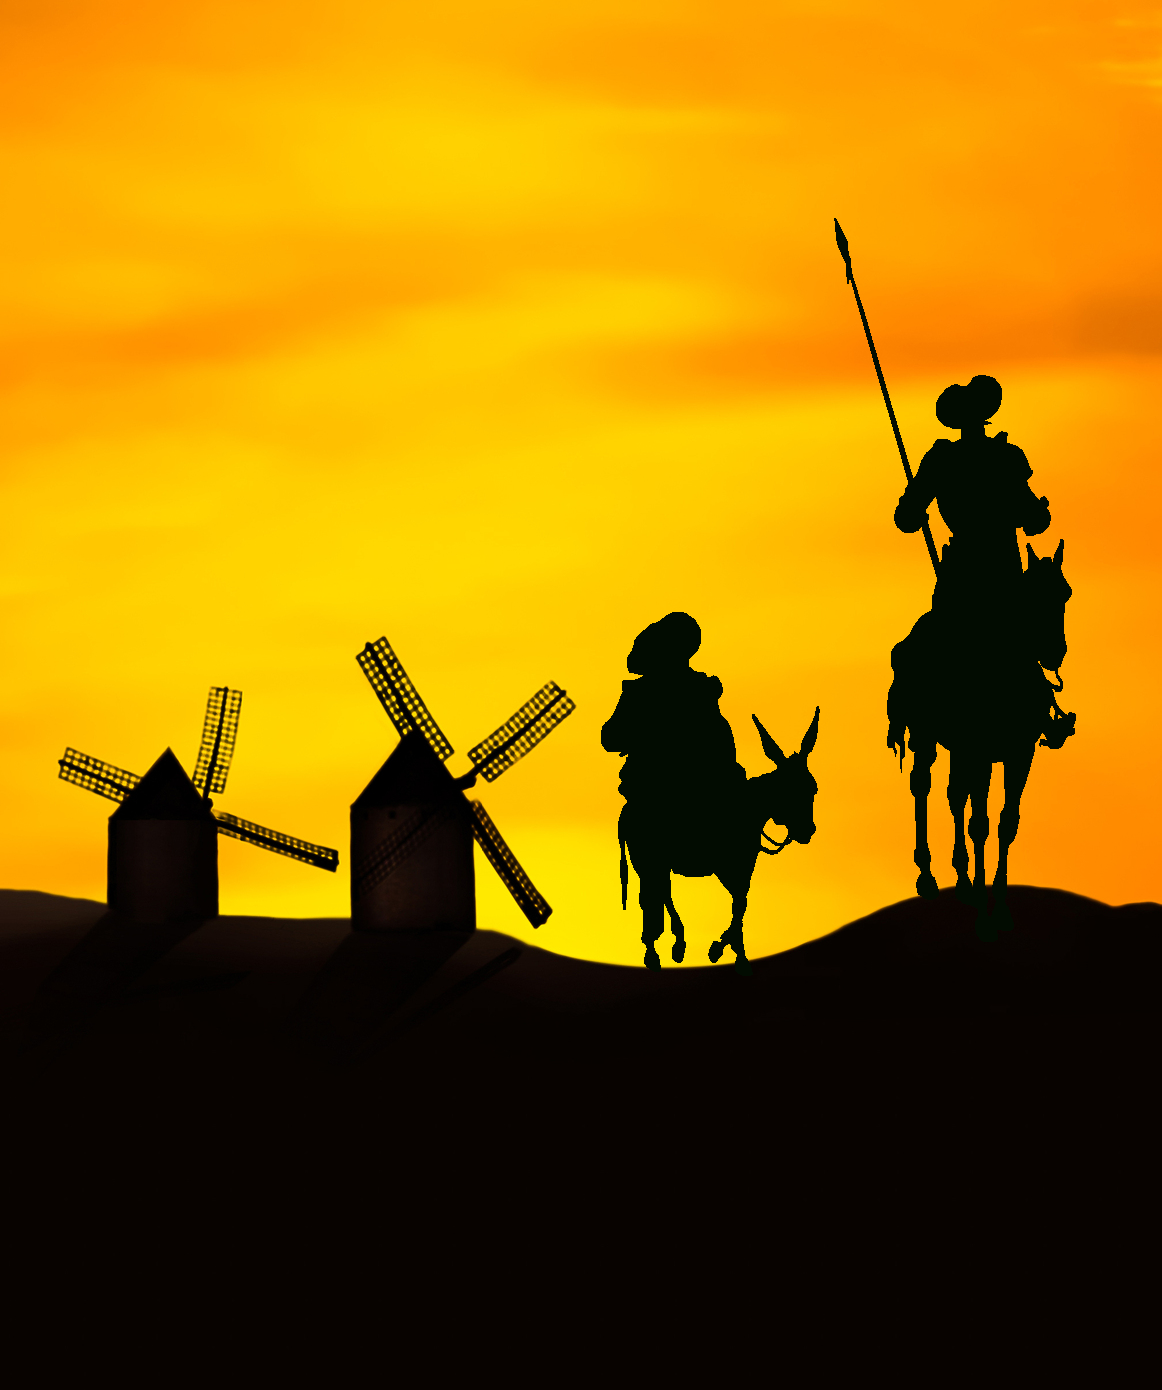 Man of La Mancha - by Dale Wasserman and Mitch LeighDirected by David MetcalfJuly 2019To wrap up our Season, we will be presenting a classic story of the